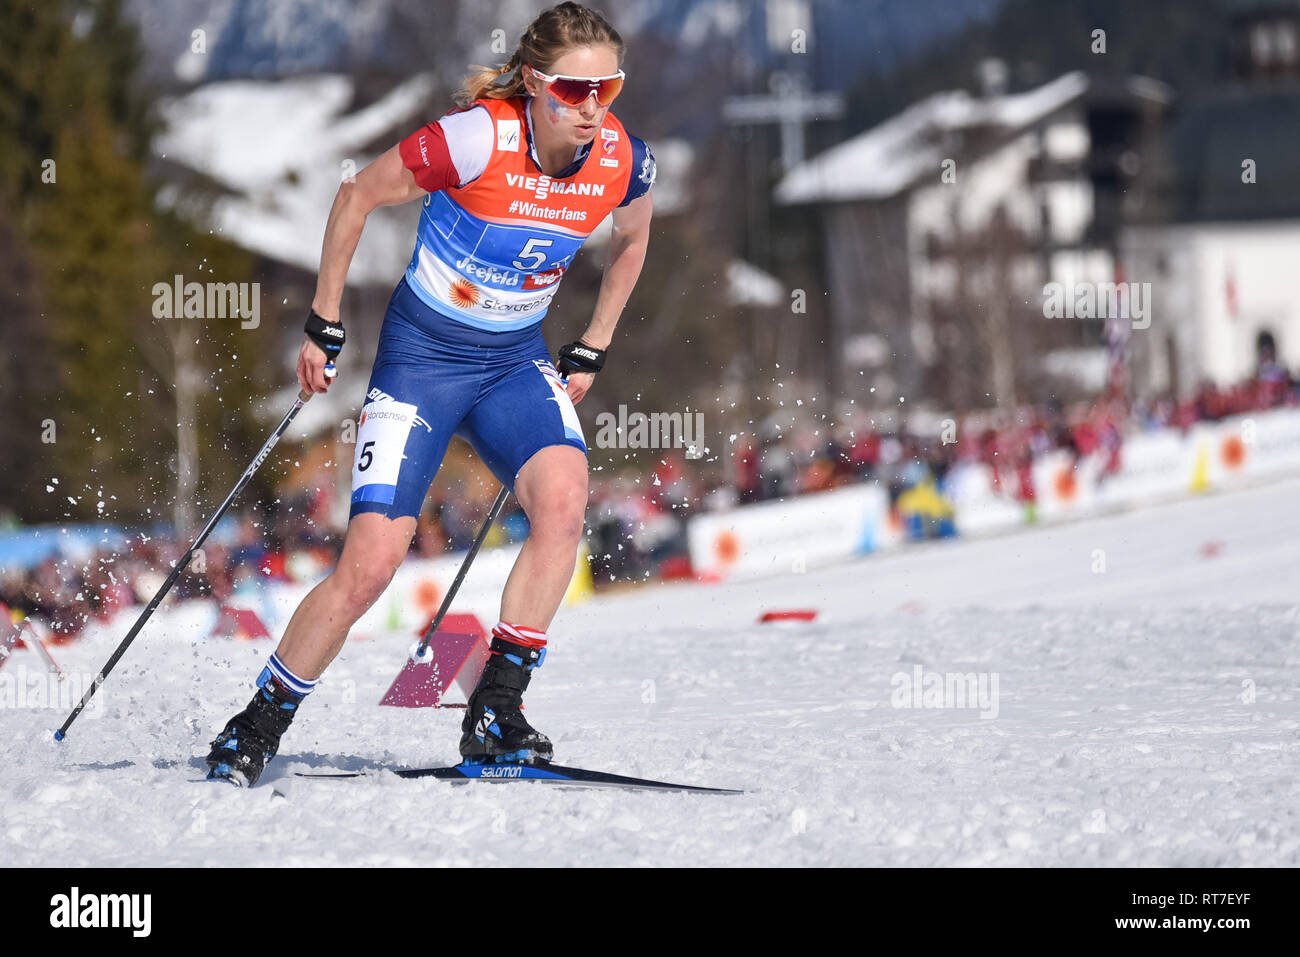 Seefeld, Austria, 28th February, 2019. How hot was it? Jessie Diggins, cut the legs off her racing uniform to race the anchor leg for the US Ski Team's relay team at nordic world ski championships.  Temperatures were in the 50s. The US finished fifth. © John Lazenby/Alamy Live News. - Stock Image